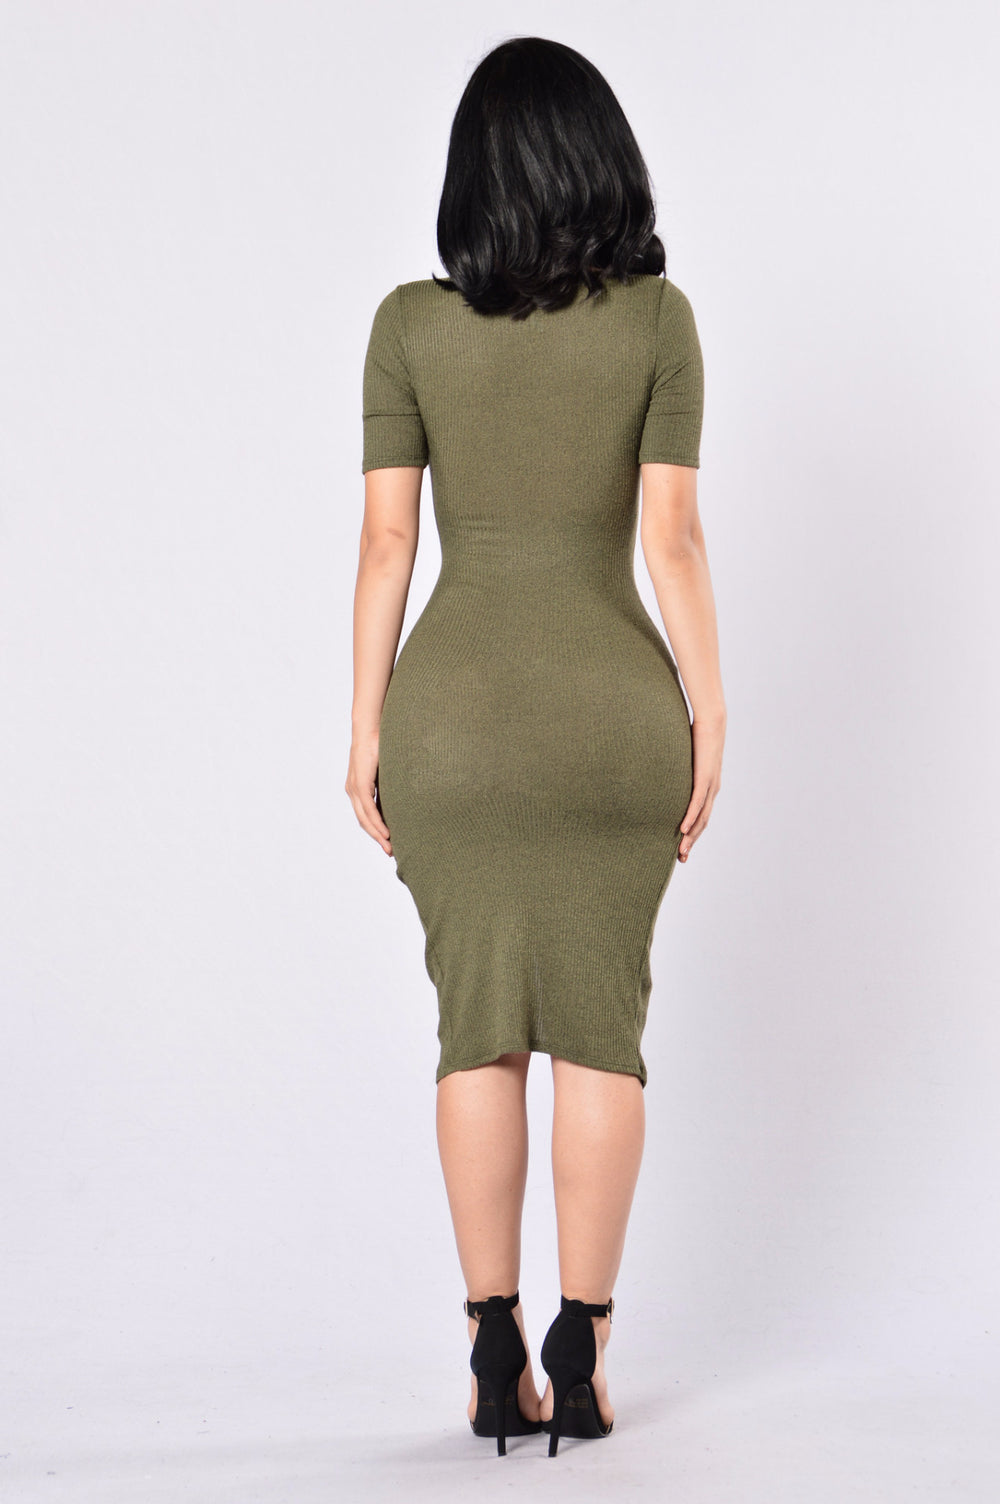 Living In The Fast Lane Dress - Olive